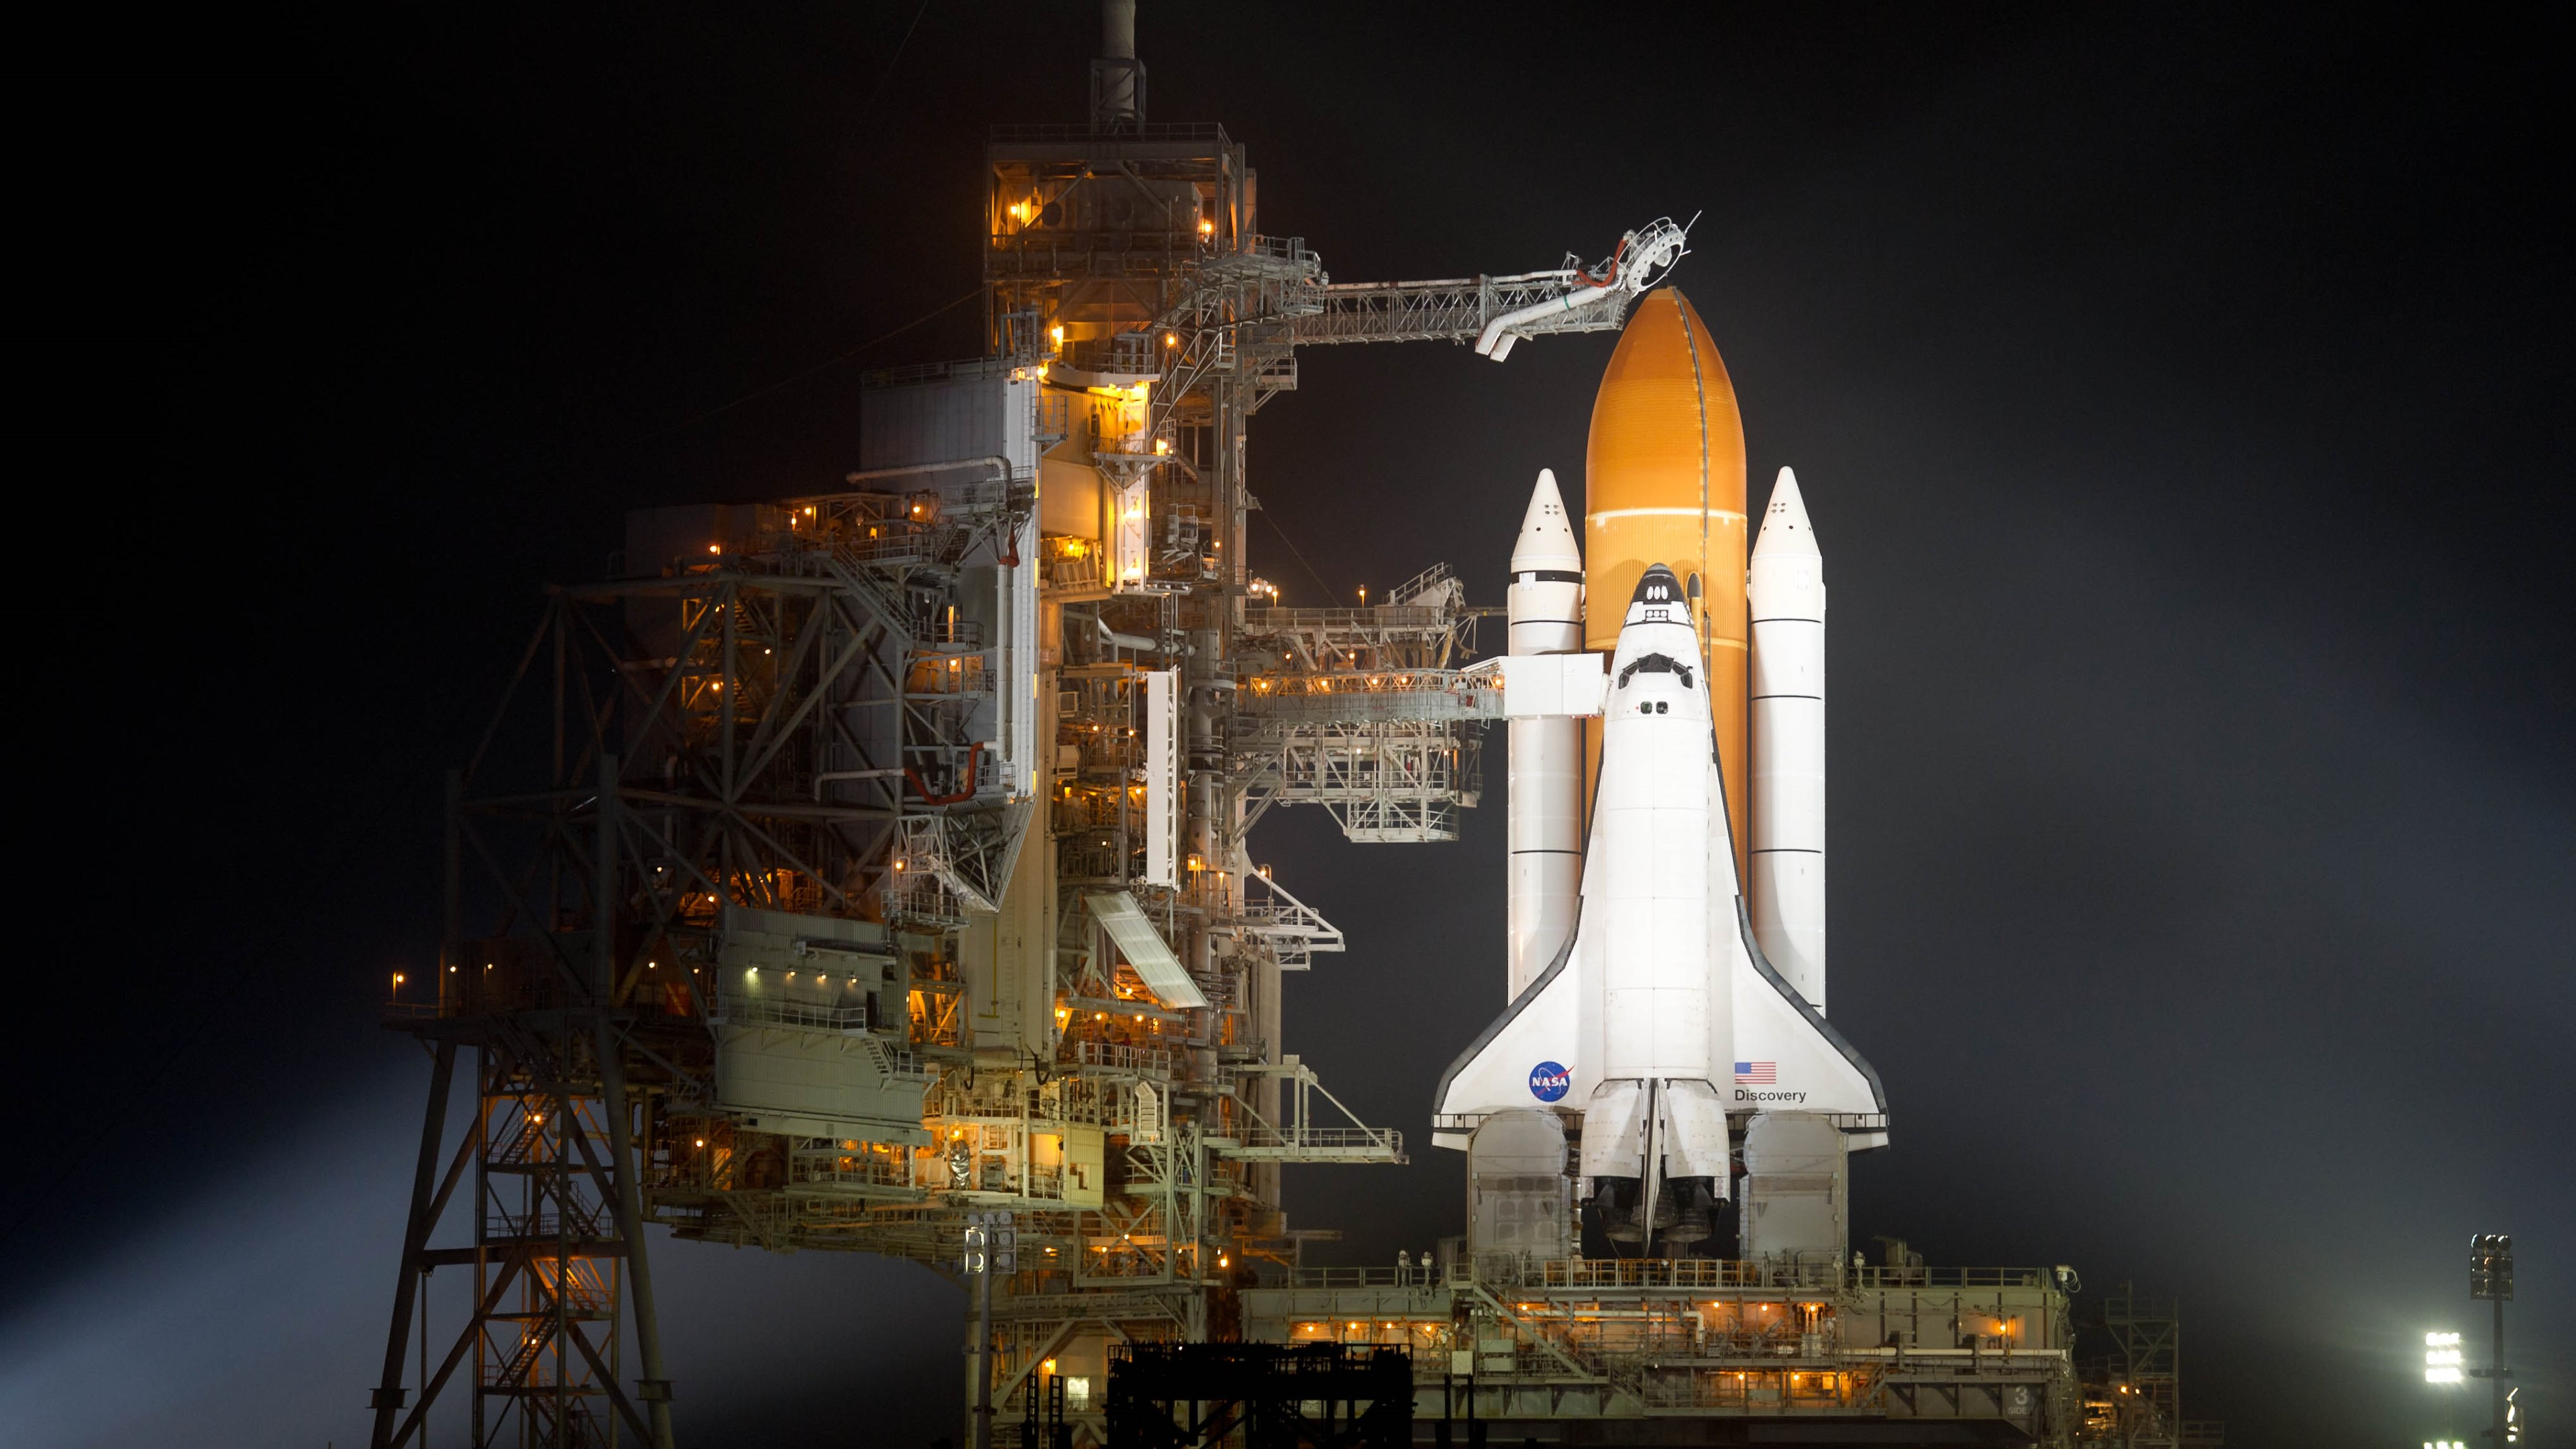 41 nasa 4k wallpapers on wallpapersafari - 4k space shuttle ...